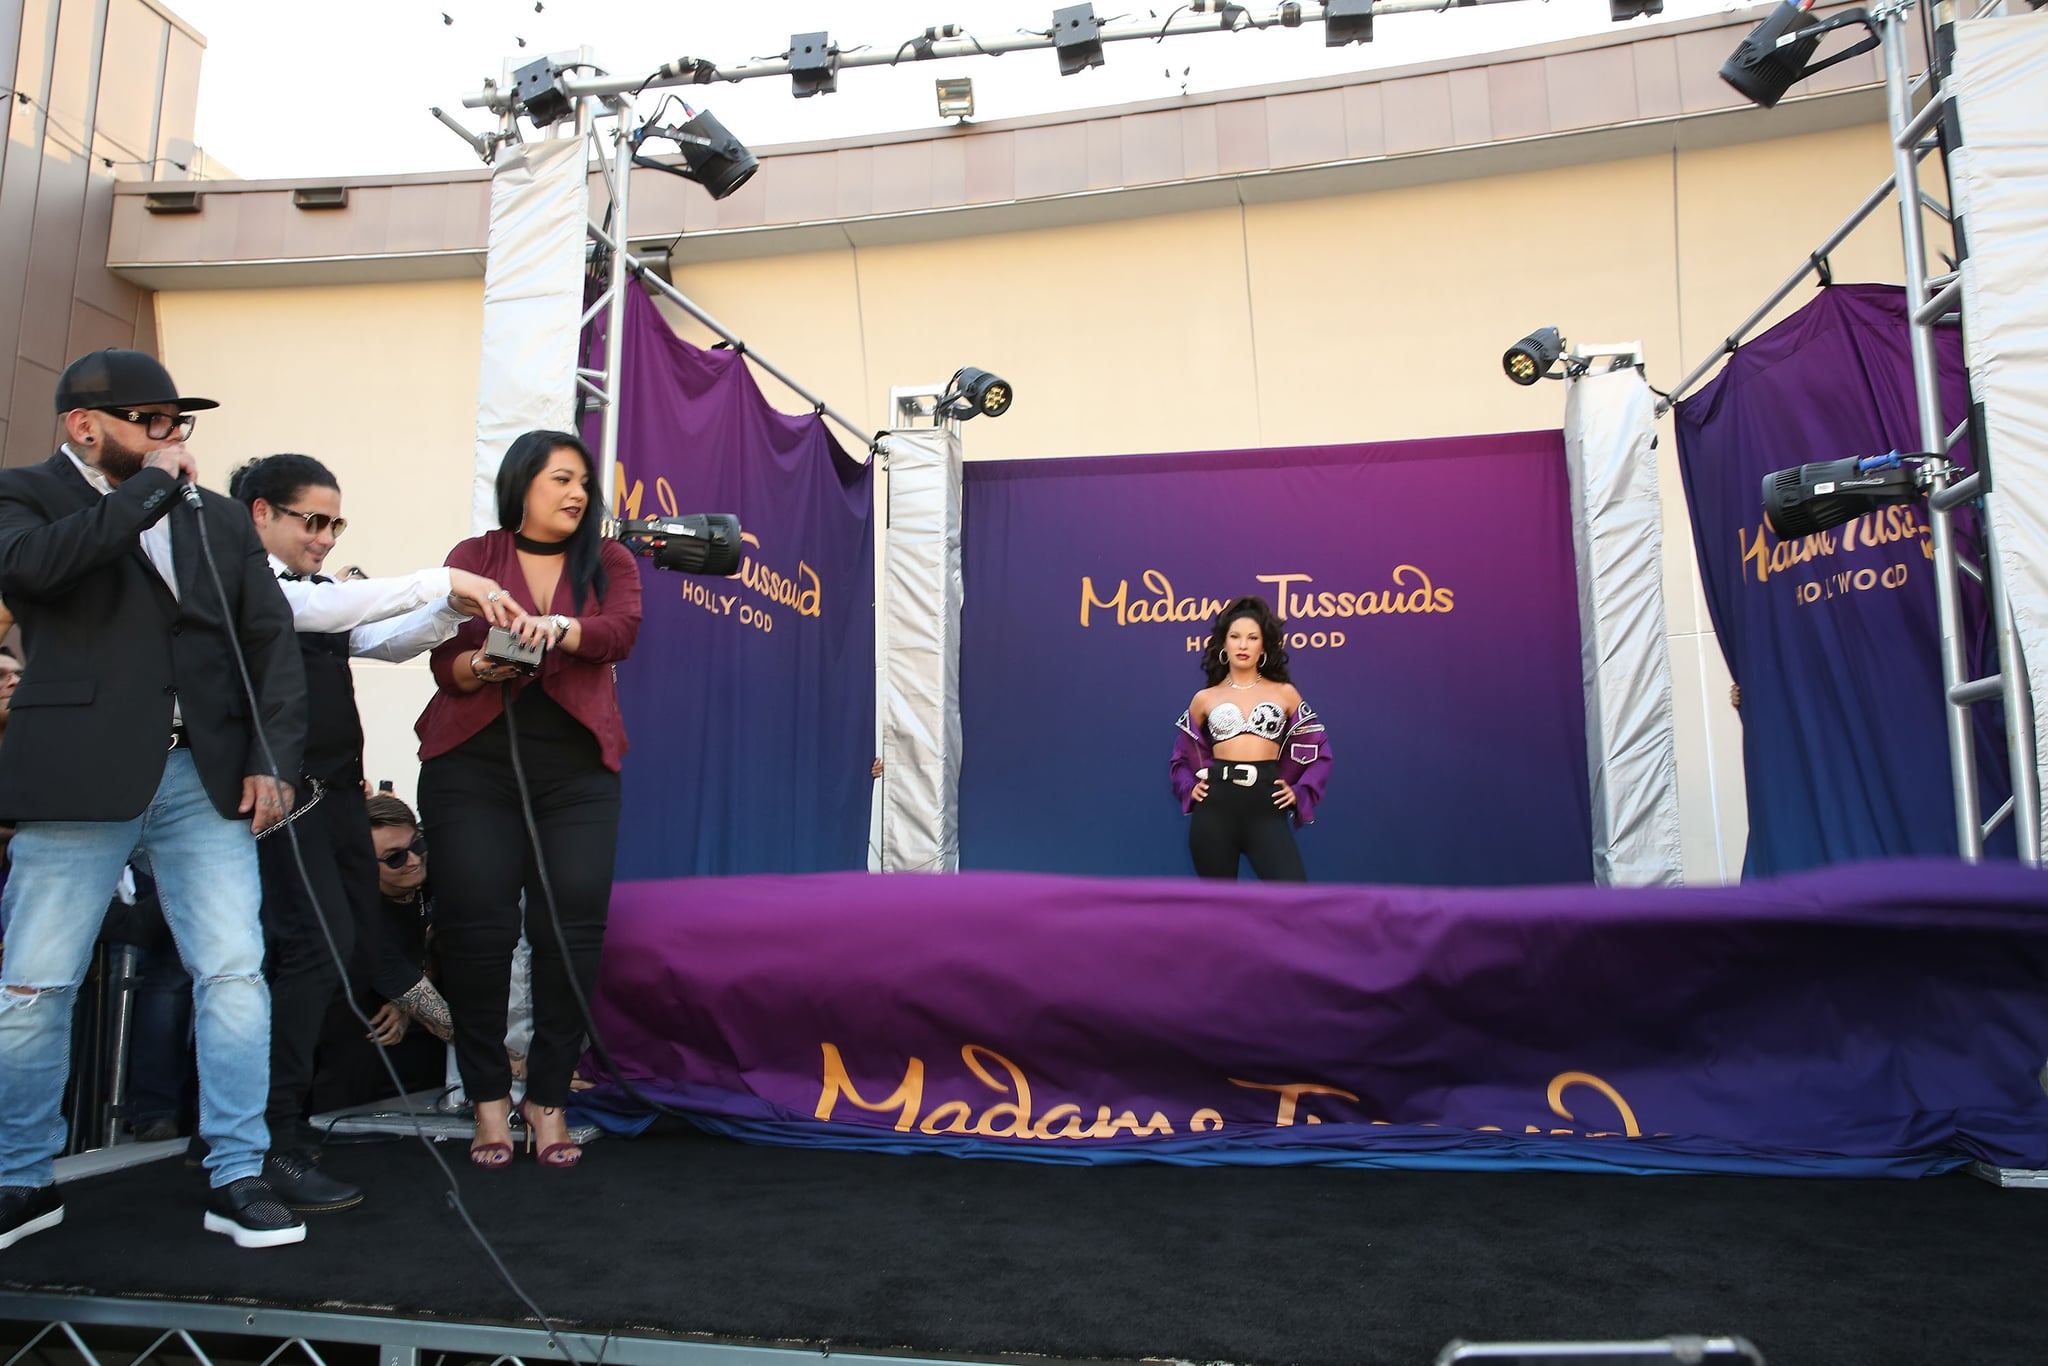 She's Here! Get Your First Look at Selena's Madame Tussauds Wax Figure